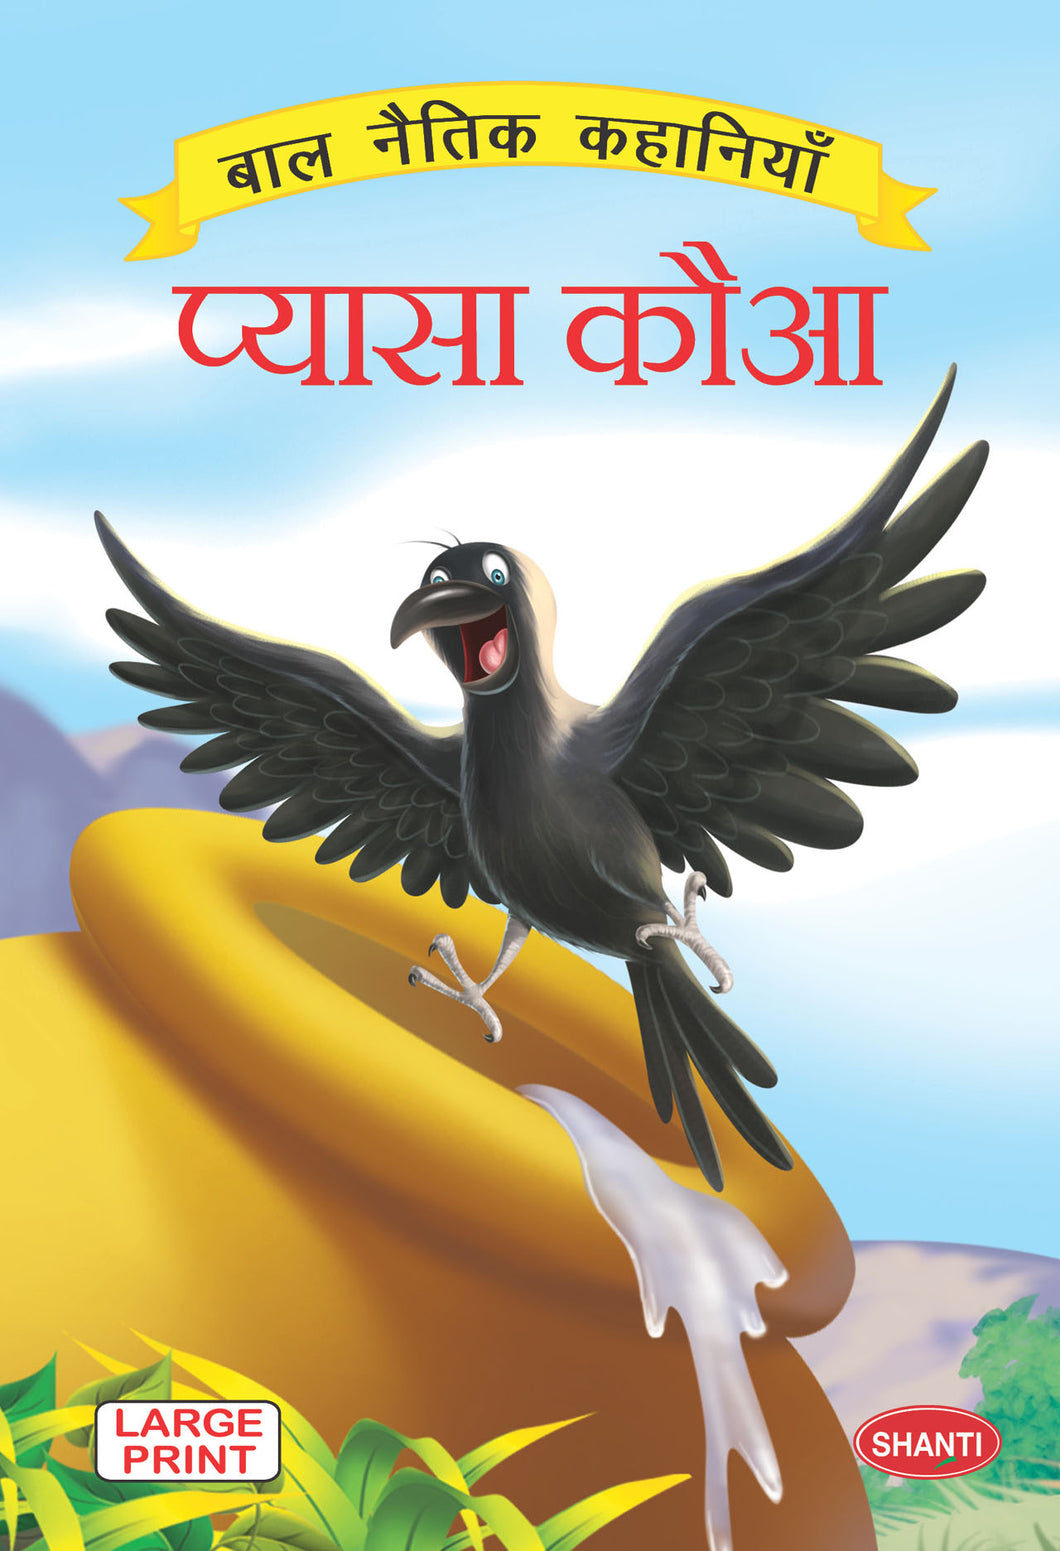 Moral stories for children-Moral Stories (Hindi) - Pyaasa Kowa